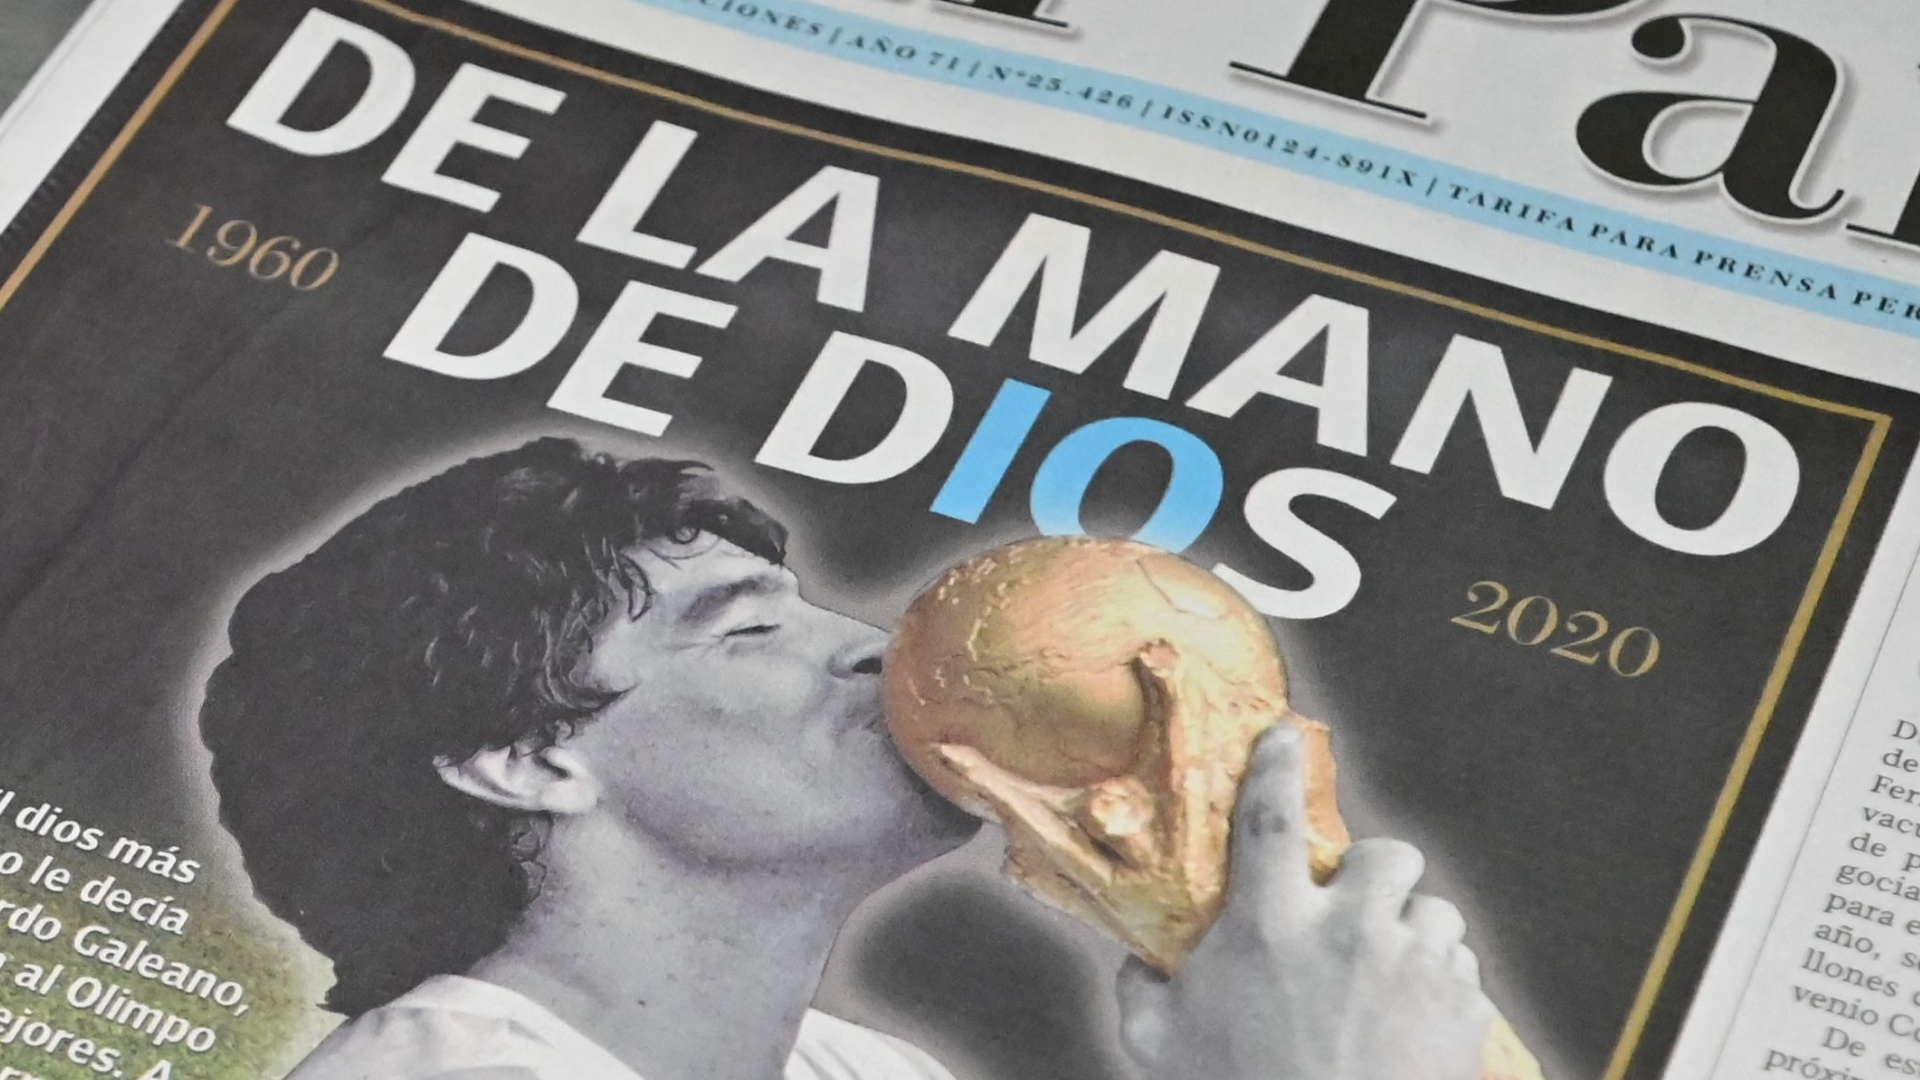 Diego Maradona dies: Newspaper front pages pay tribute to a legend